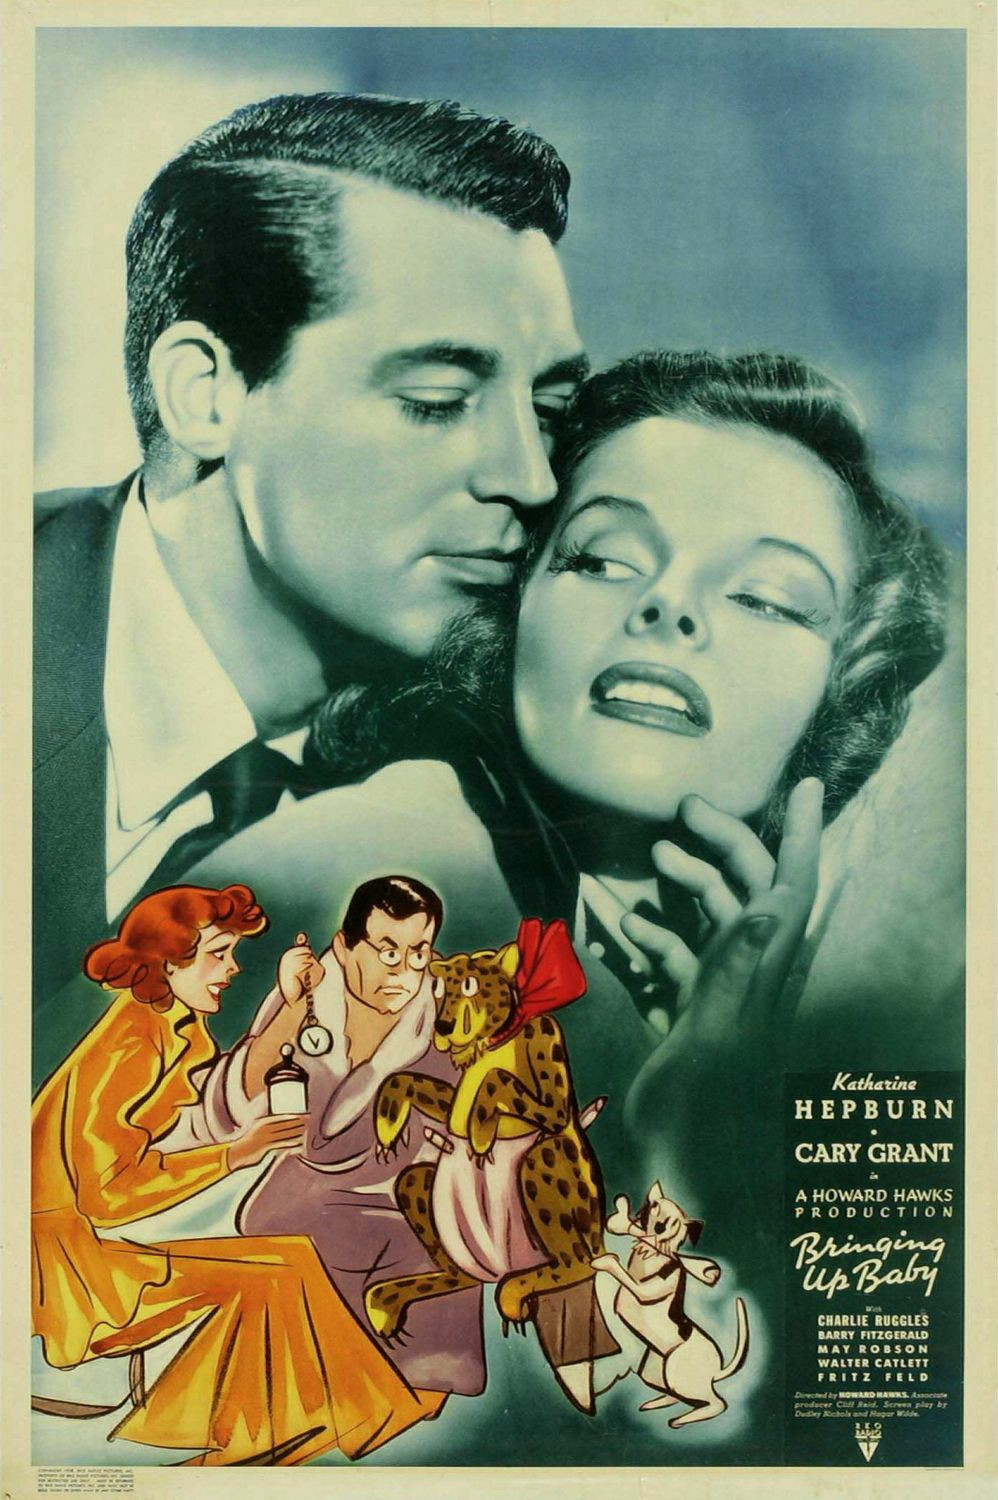 Susanna - Bringing up Baby (1938) - Cast: Katharine Hepburn, Cary Grant, Charles Ruggles, Walter Catlett  - classic film poster